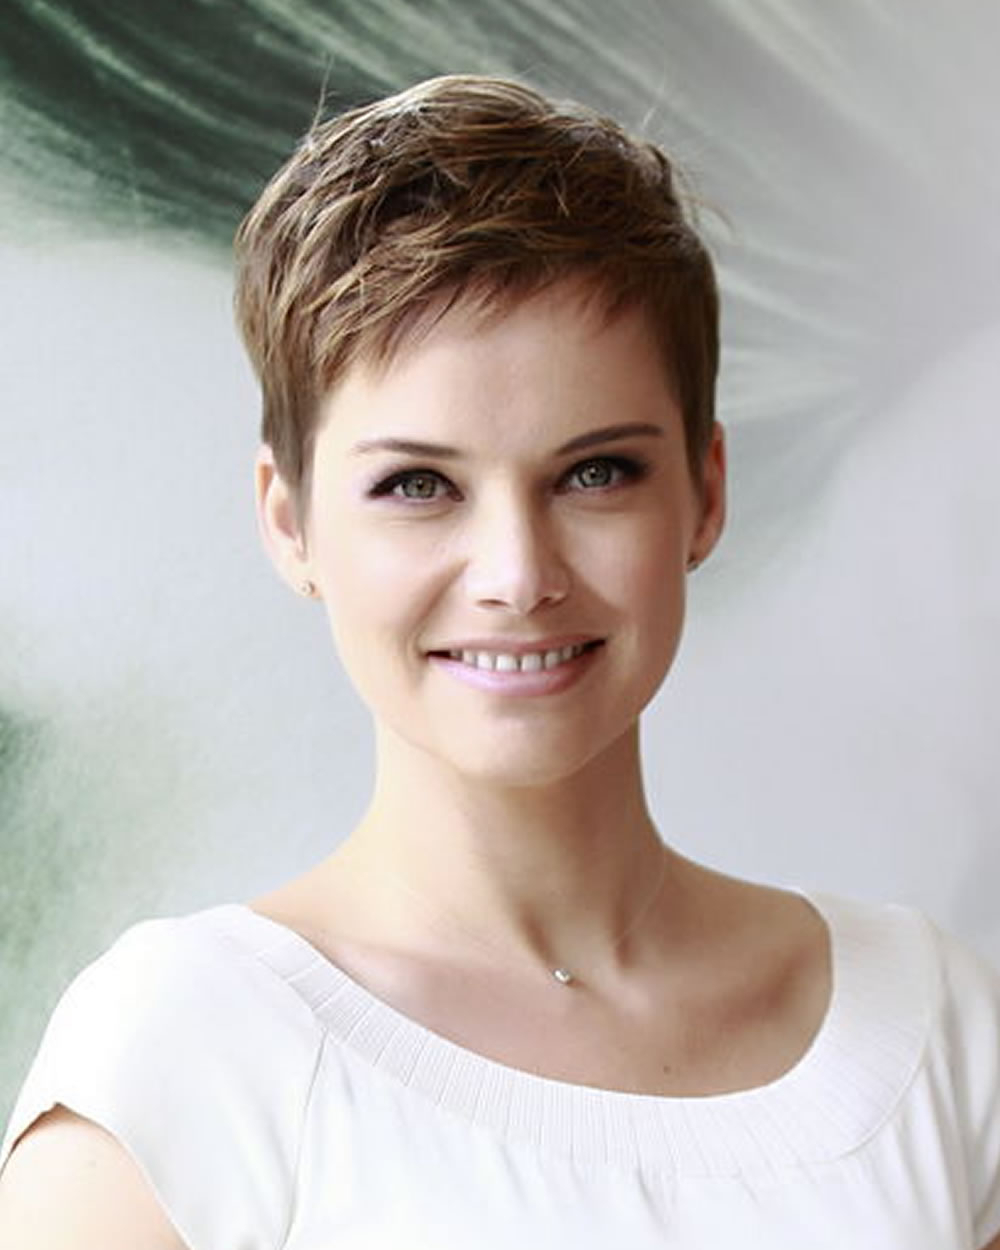 21 Trendy Short Haircut Images And Pixie Hairstyles You'll Really Regarding Trendy Short Haircuts (View 9 of 25)